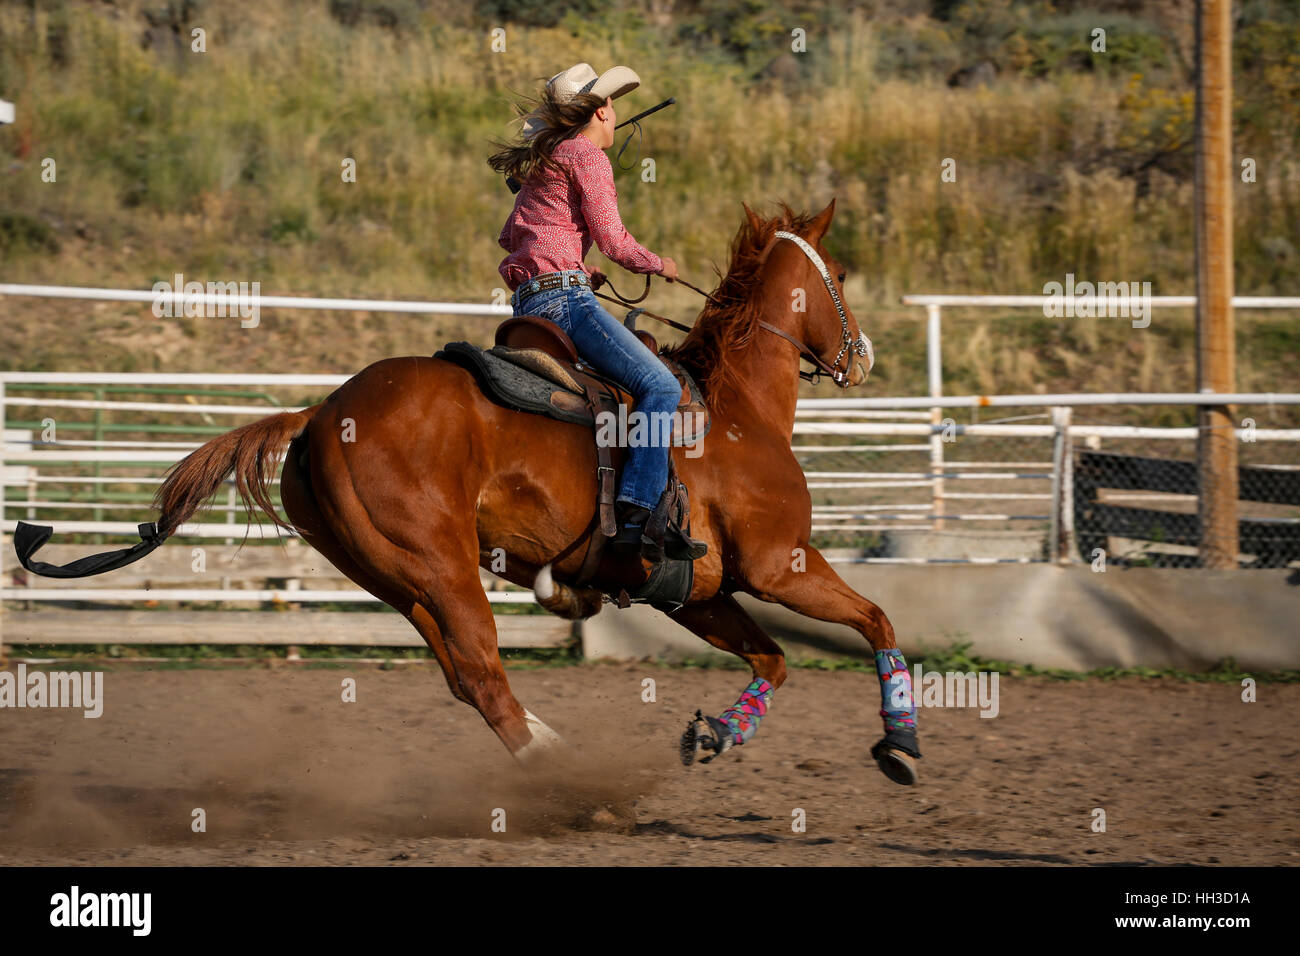 Young woman riding a horse through a rodeo arena during a youth rodeo event. - Stock Image